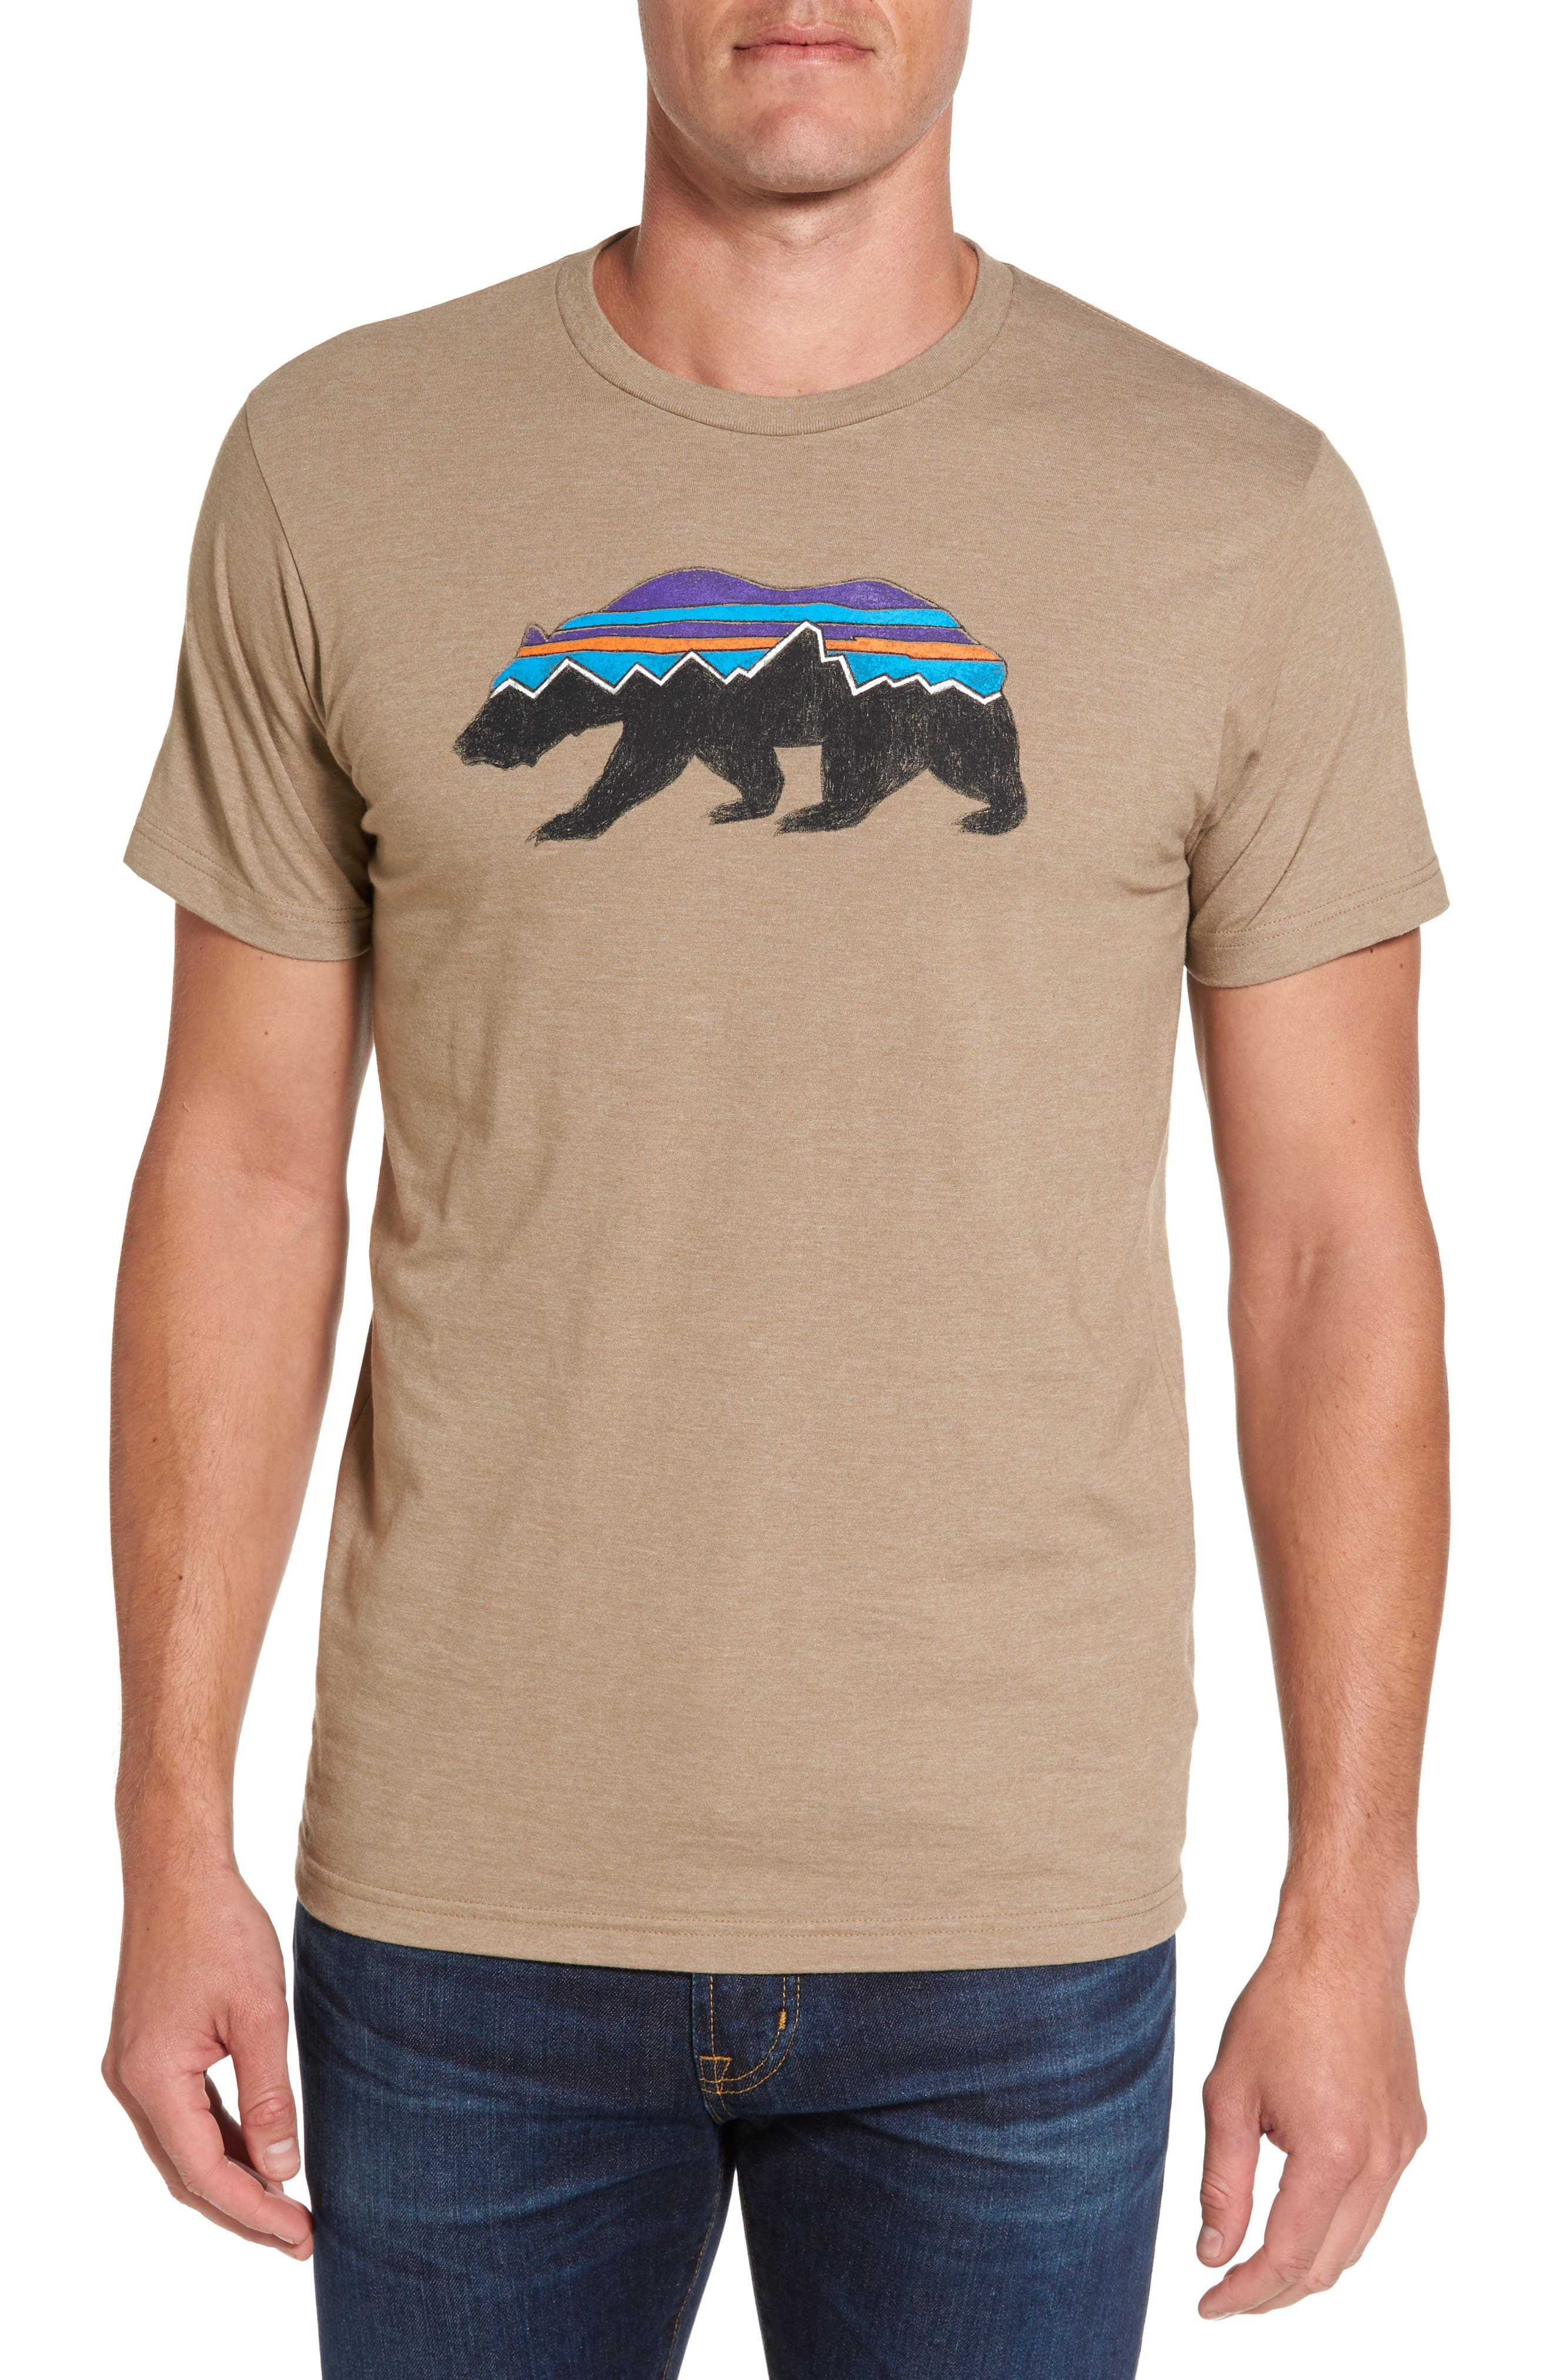 Patagonia Fitzroy Bear Graphic T-Shirt